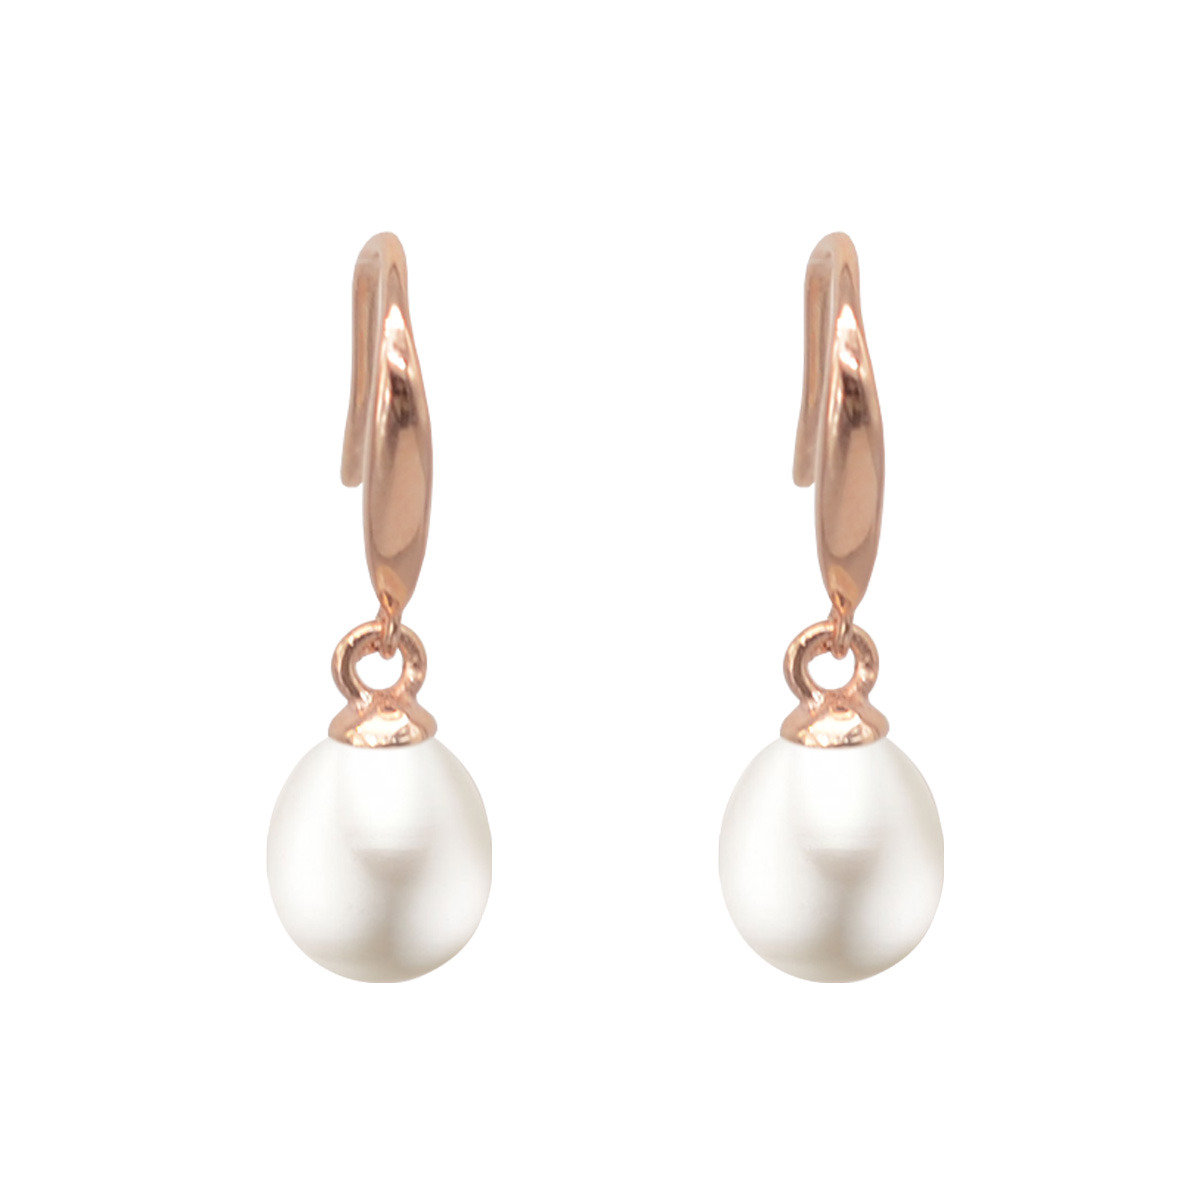 Rose gold color 925 silver with Cultured fresh water pearl earring